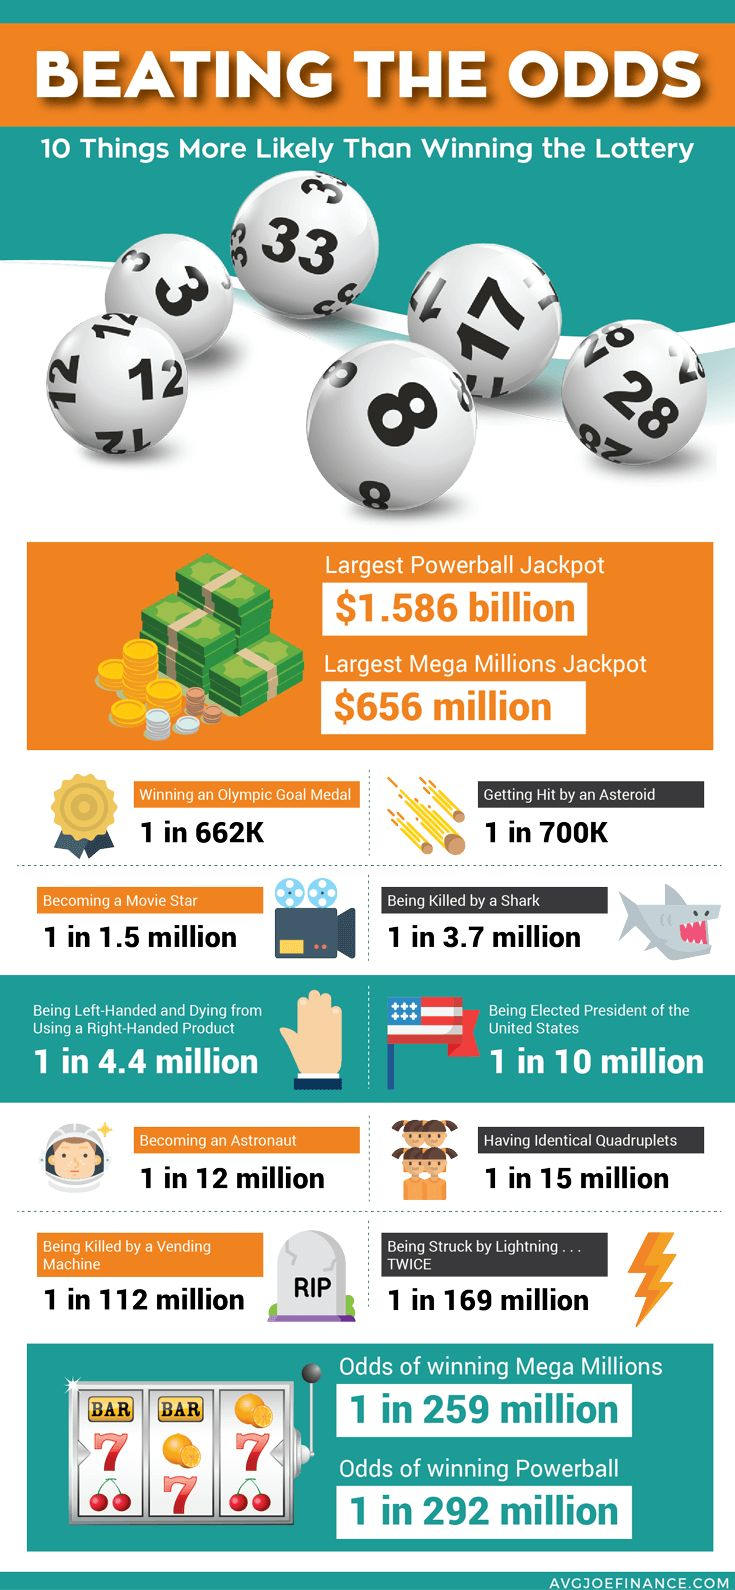 Repin for the next time you're thinking about buying a lottery ticket. Think the odds of winning the lottery are pretty good? Think again! I couldn't believe some of the things that are more likely to happen than winning the lottery.